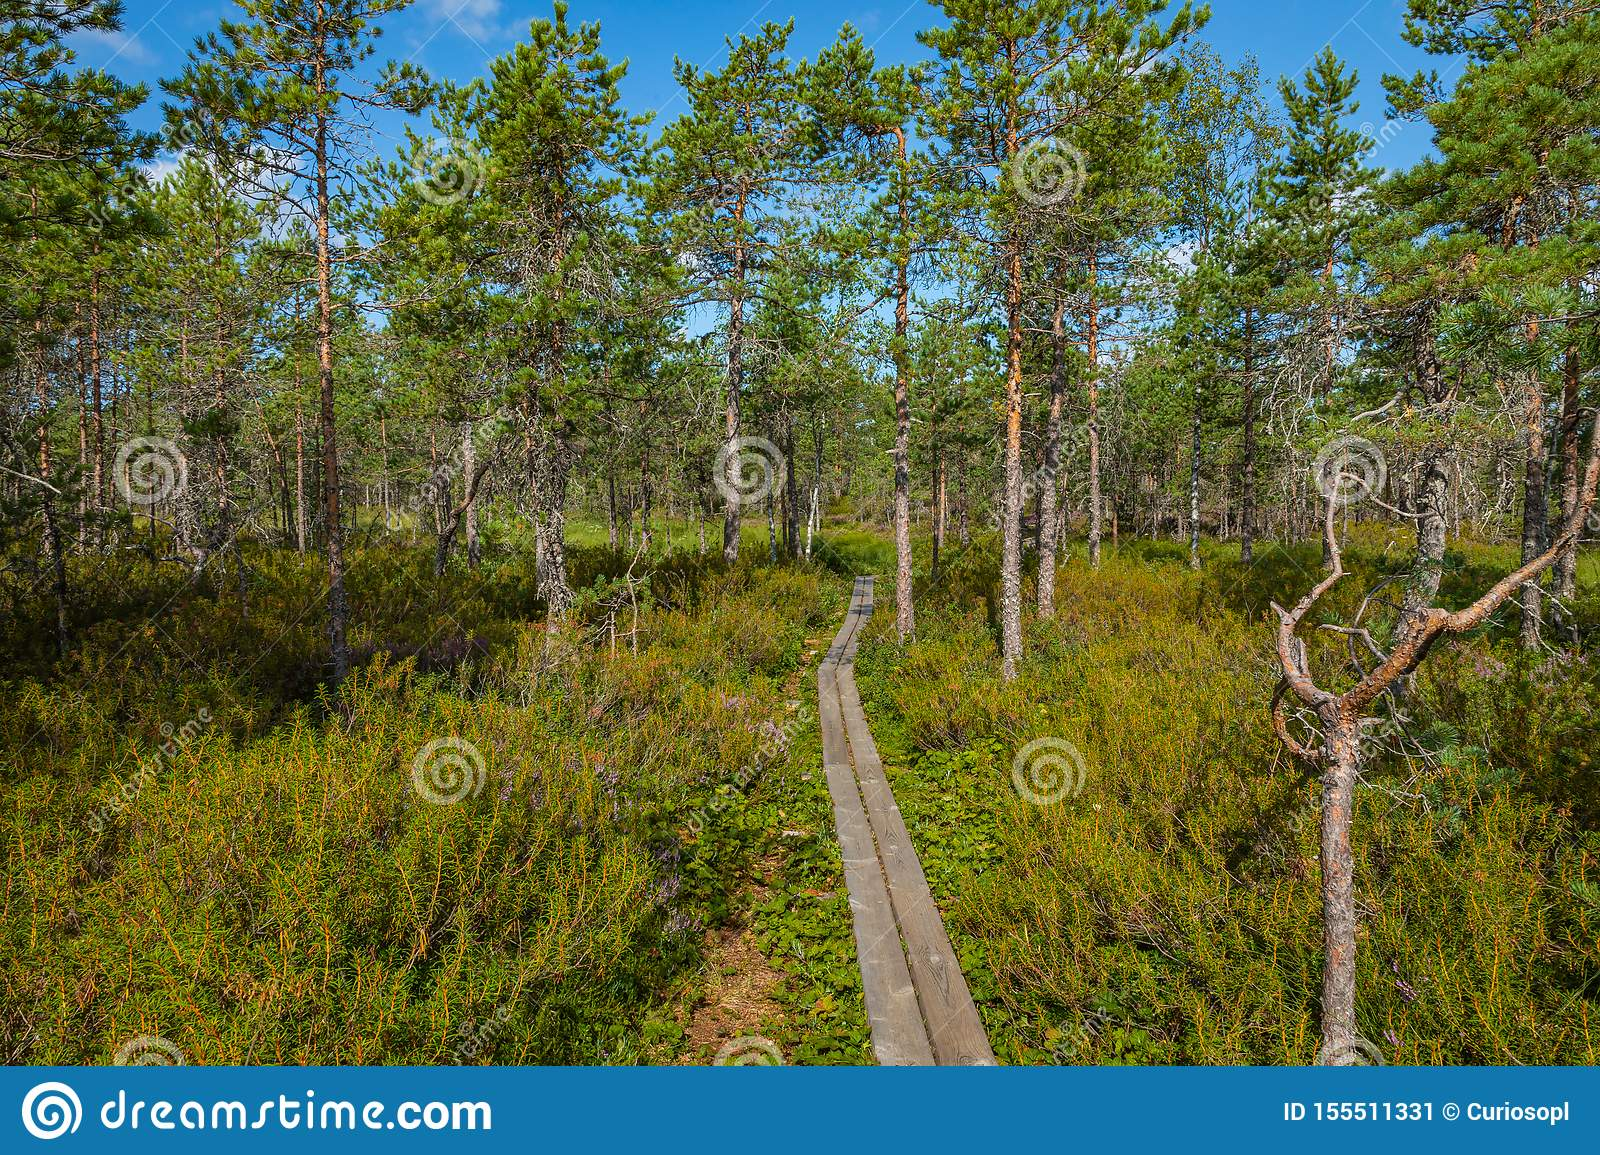 Hiking trail in scandinavian national park in a wetland bog. Kurjenrahka National Park. Turku, Finland. Nordic natural landscape